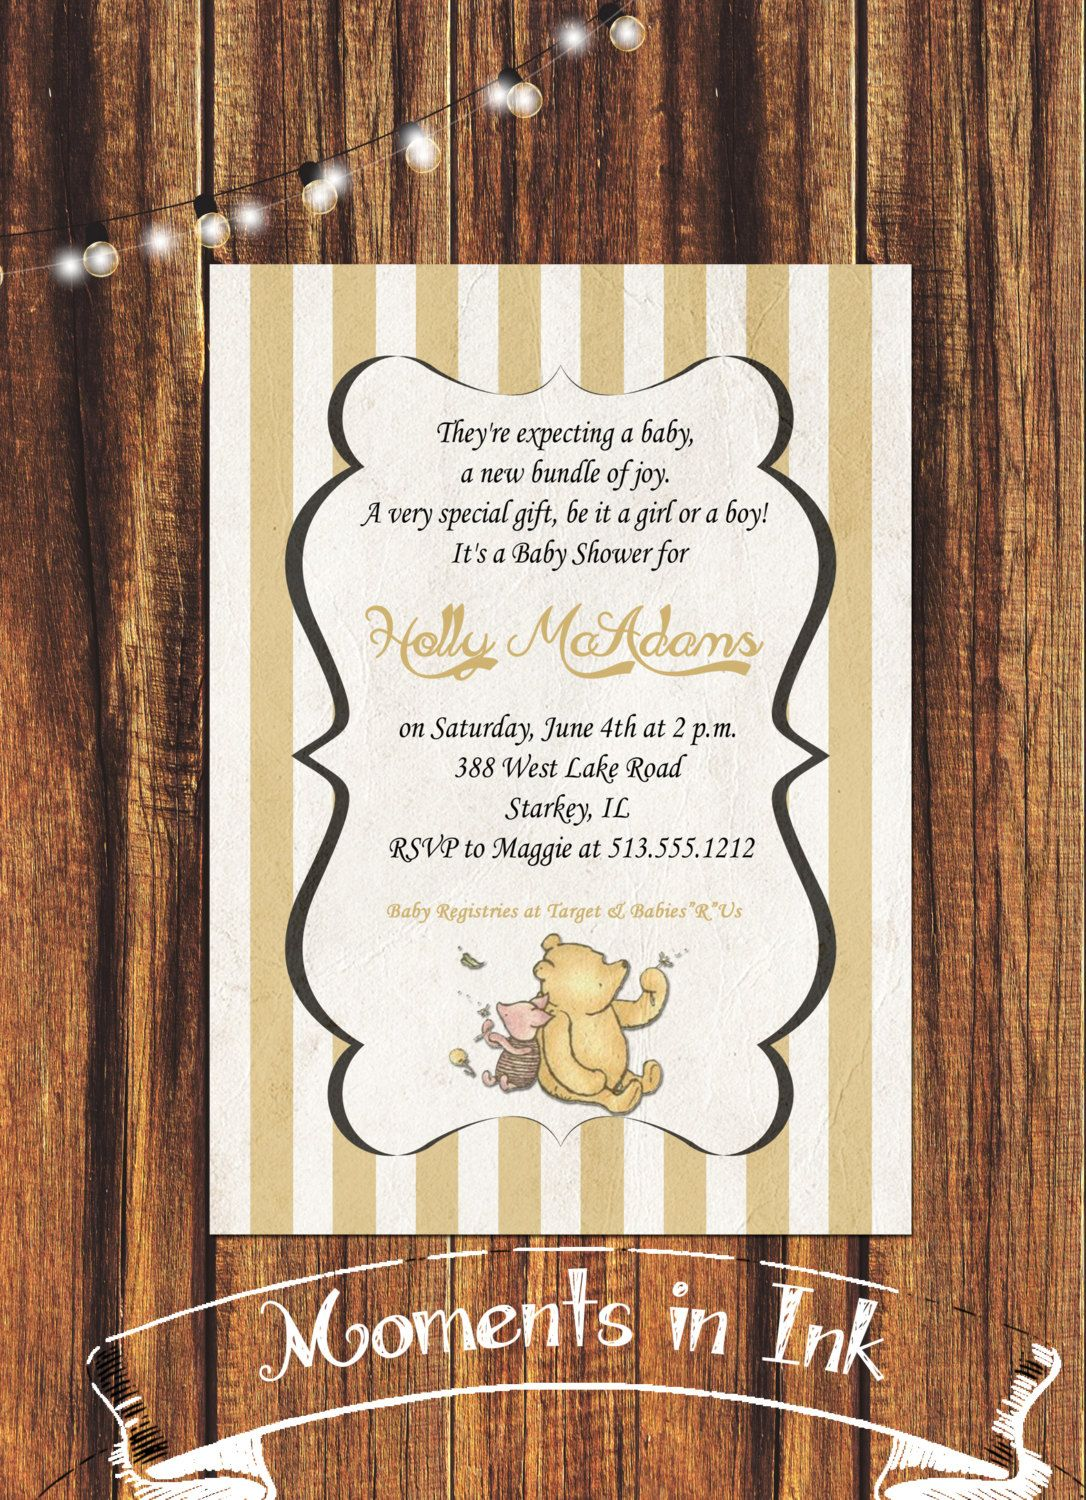 Classic winnie the pooh and piglet baby shower invitation